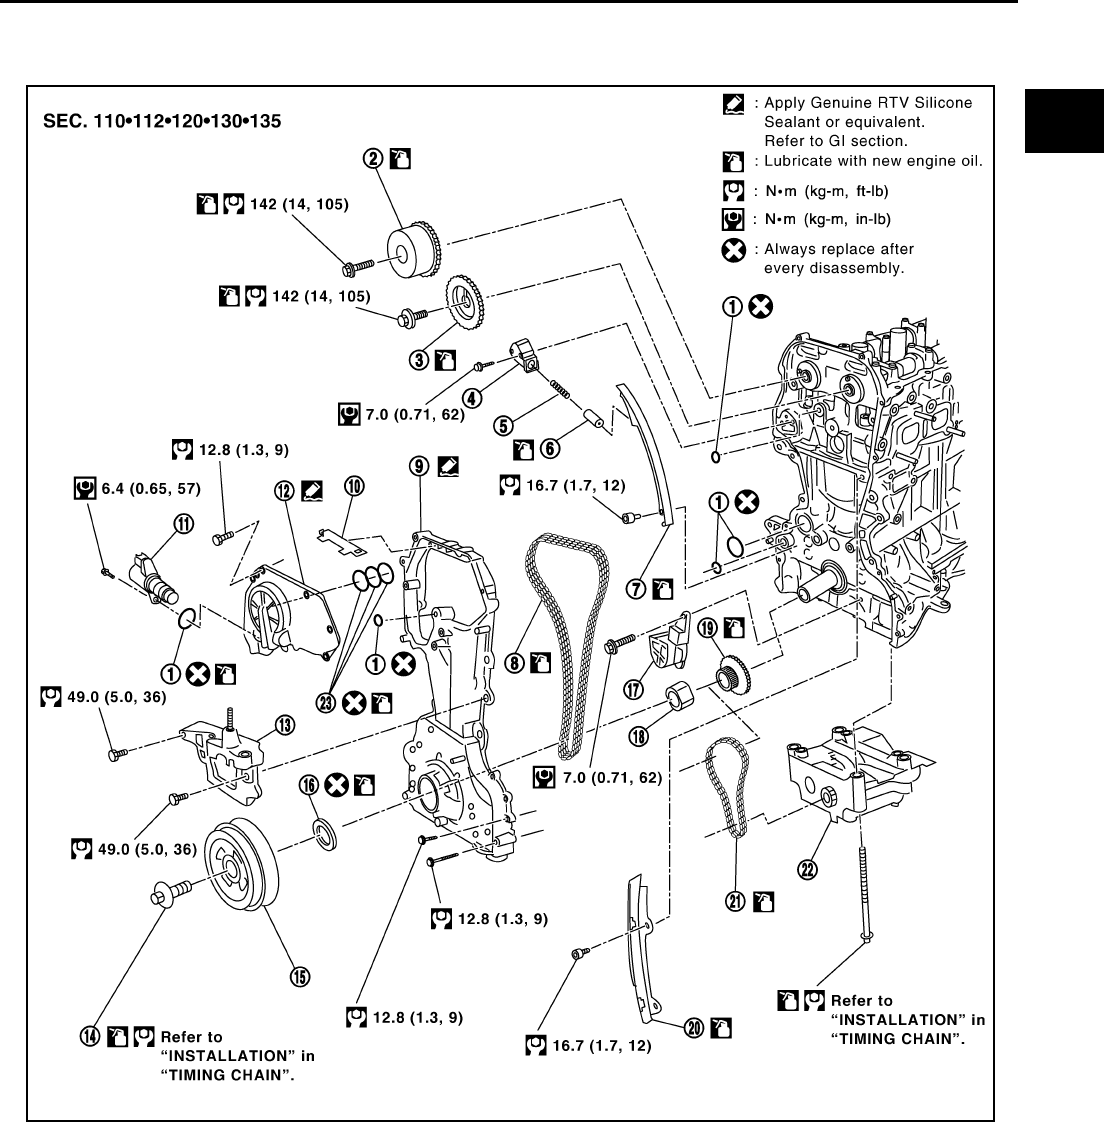 2014 Nissan Pathfinder Wiring Diagram